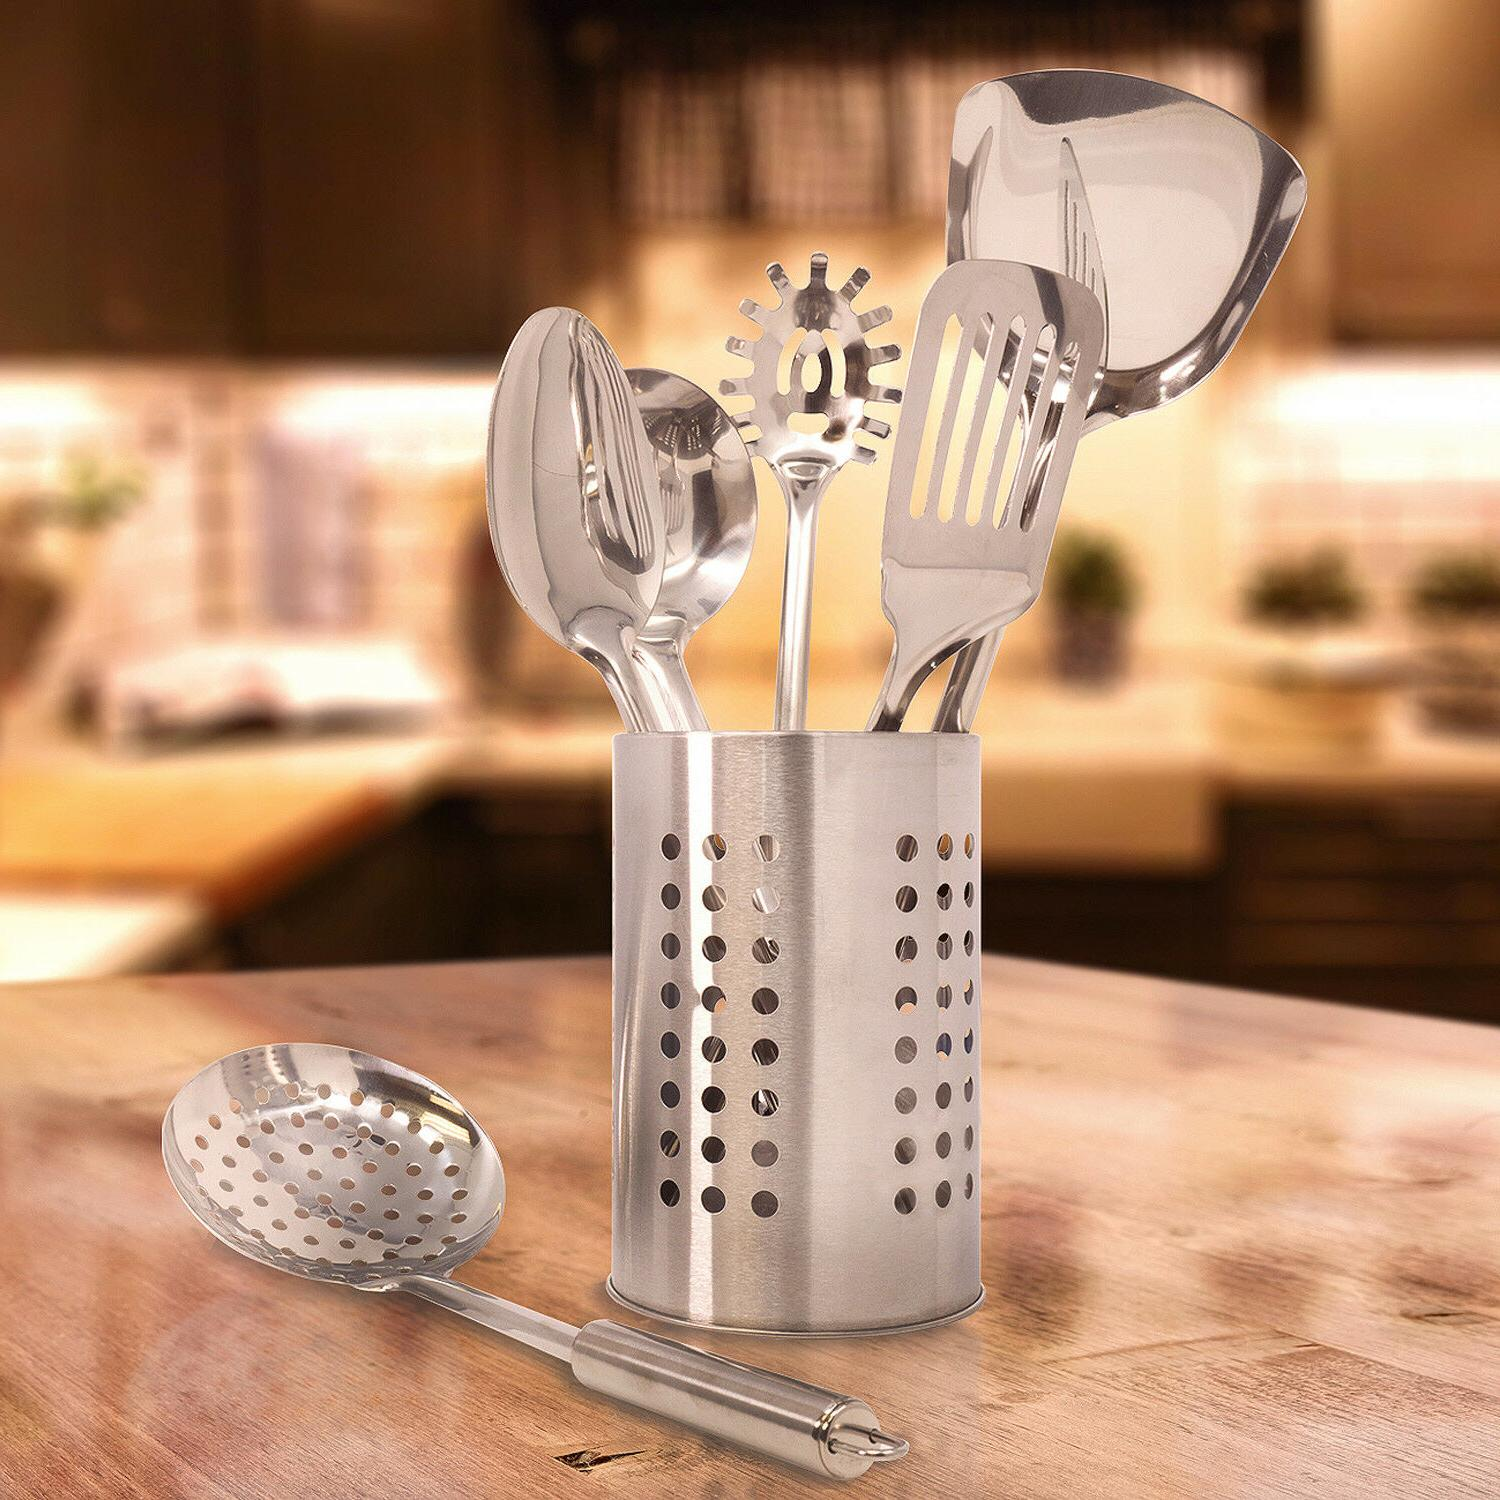 Sorbus 7-Piece Kitchen Utensil Set Holder Caddy Stainless Steel Cooking Tool Set